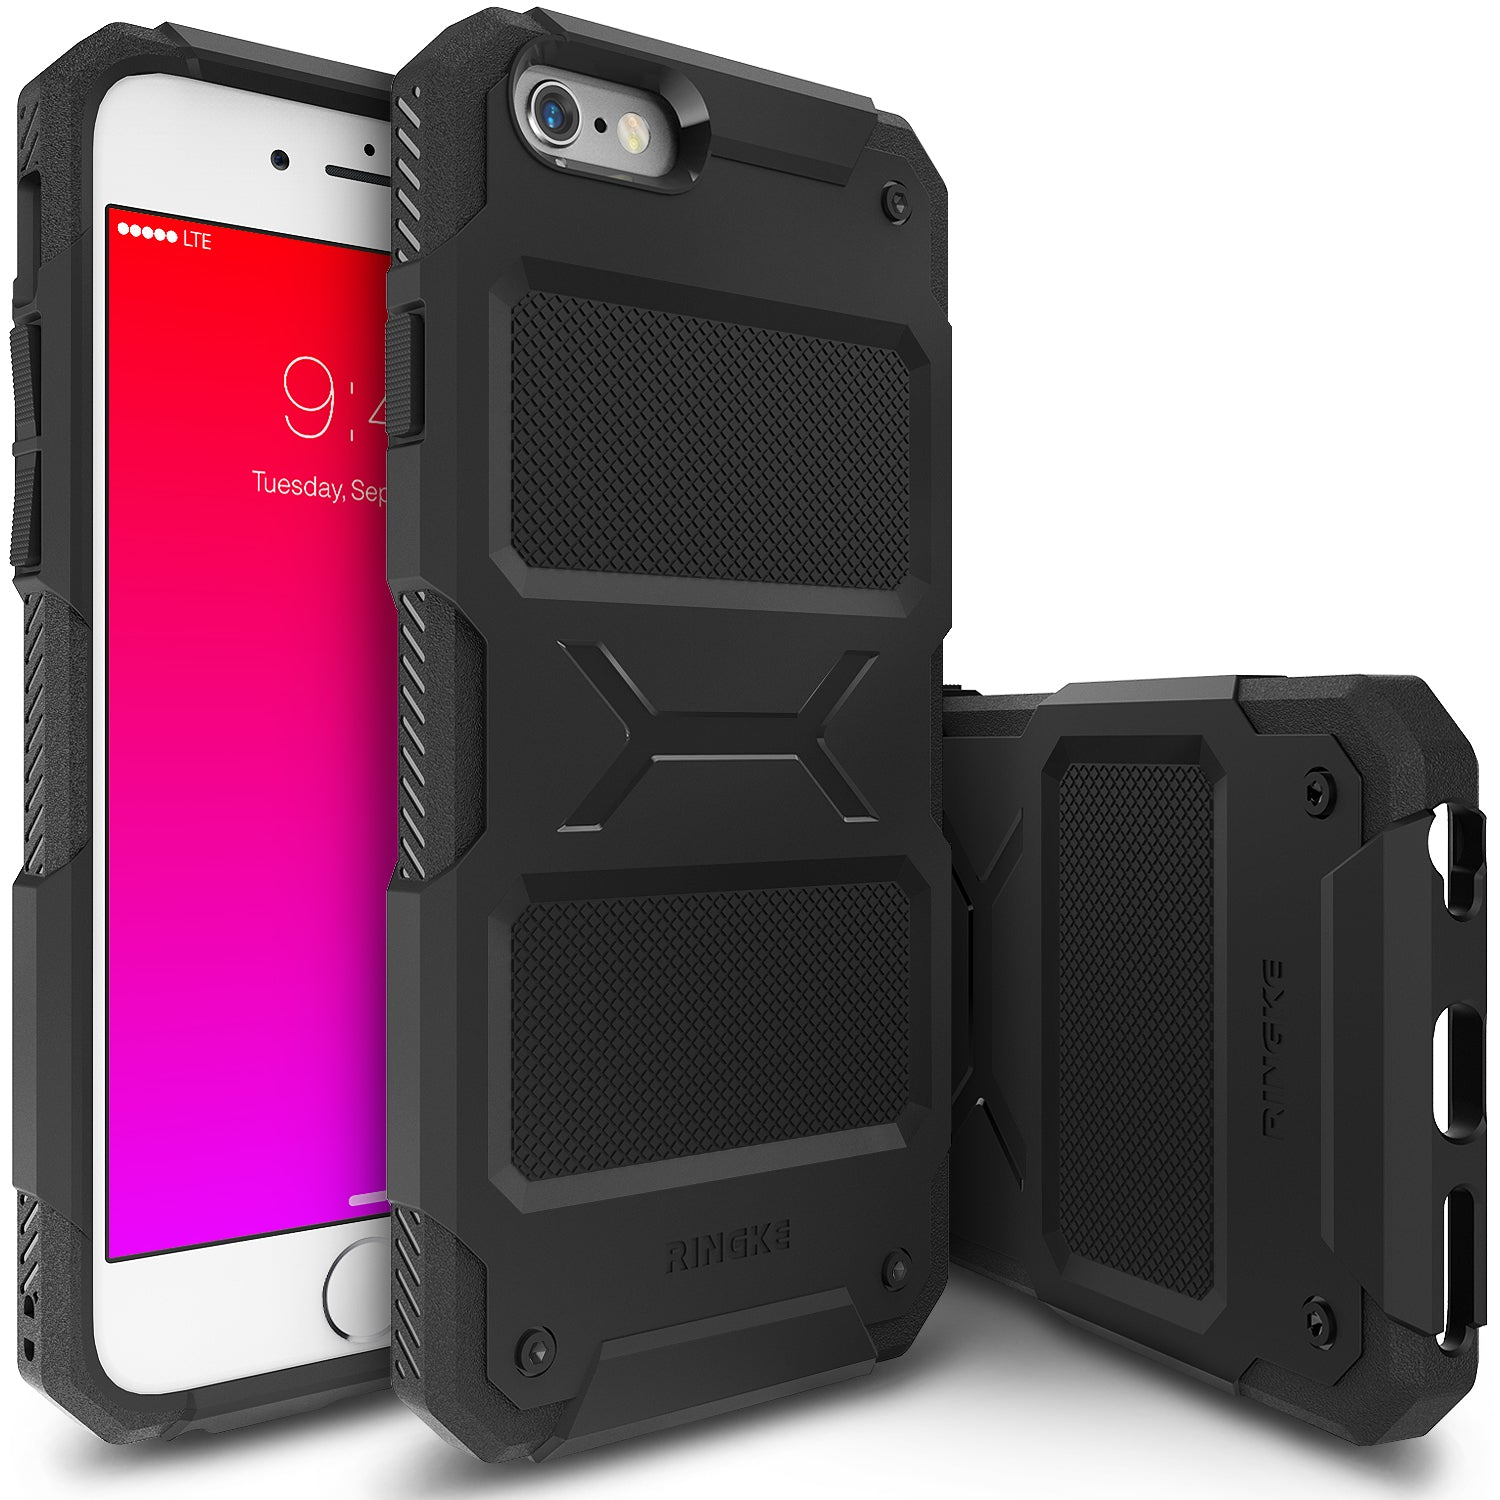 ringke rebel rugged heavy duty protective case cover for iphone 6 plus 6s plus main black